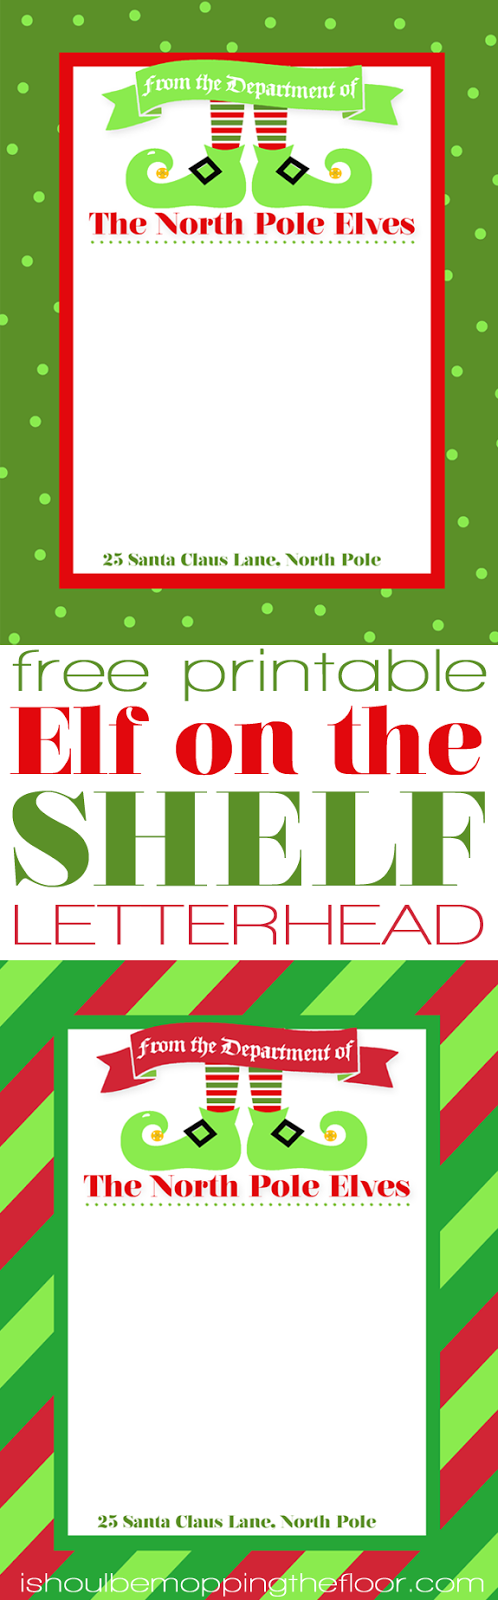 elf on the shelf letters printable free printable on the shelf letterhead letterhead 48462